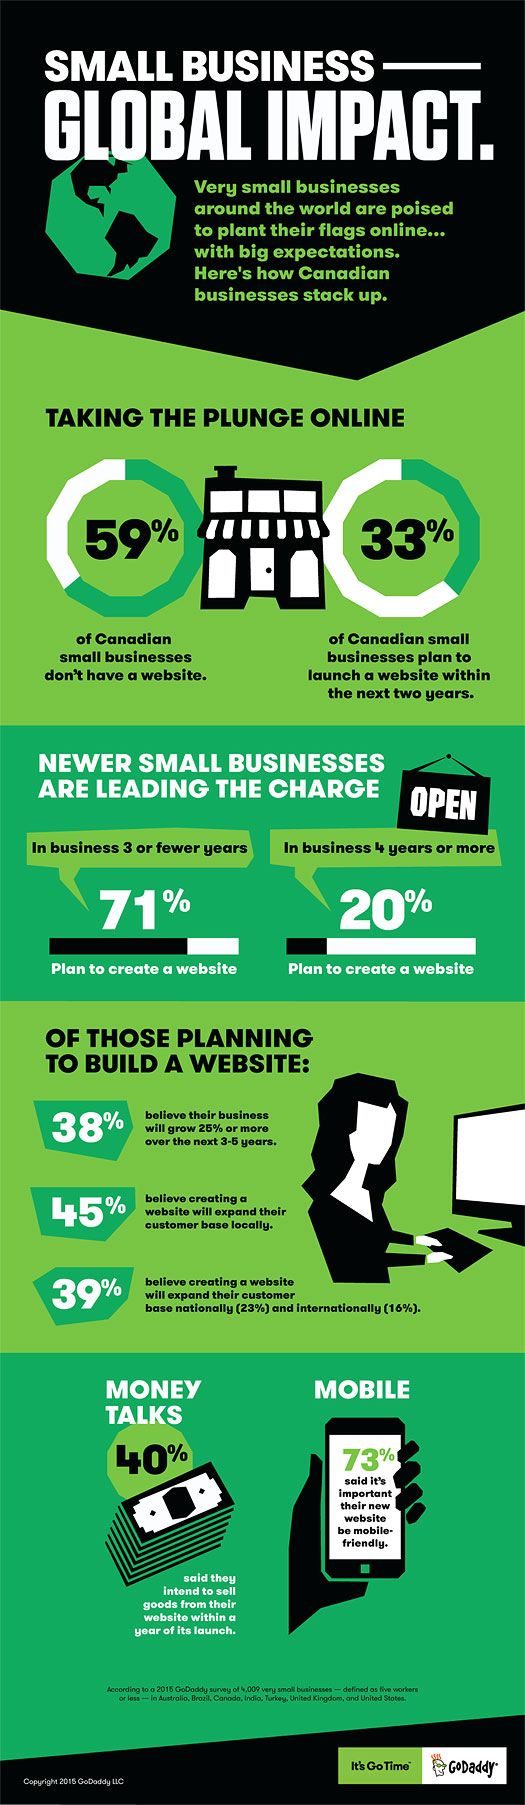 Most Canadian Micro-Businesses Don't Have a Website (Statistics & Infographic)